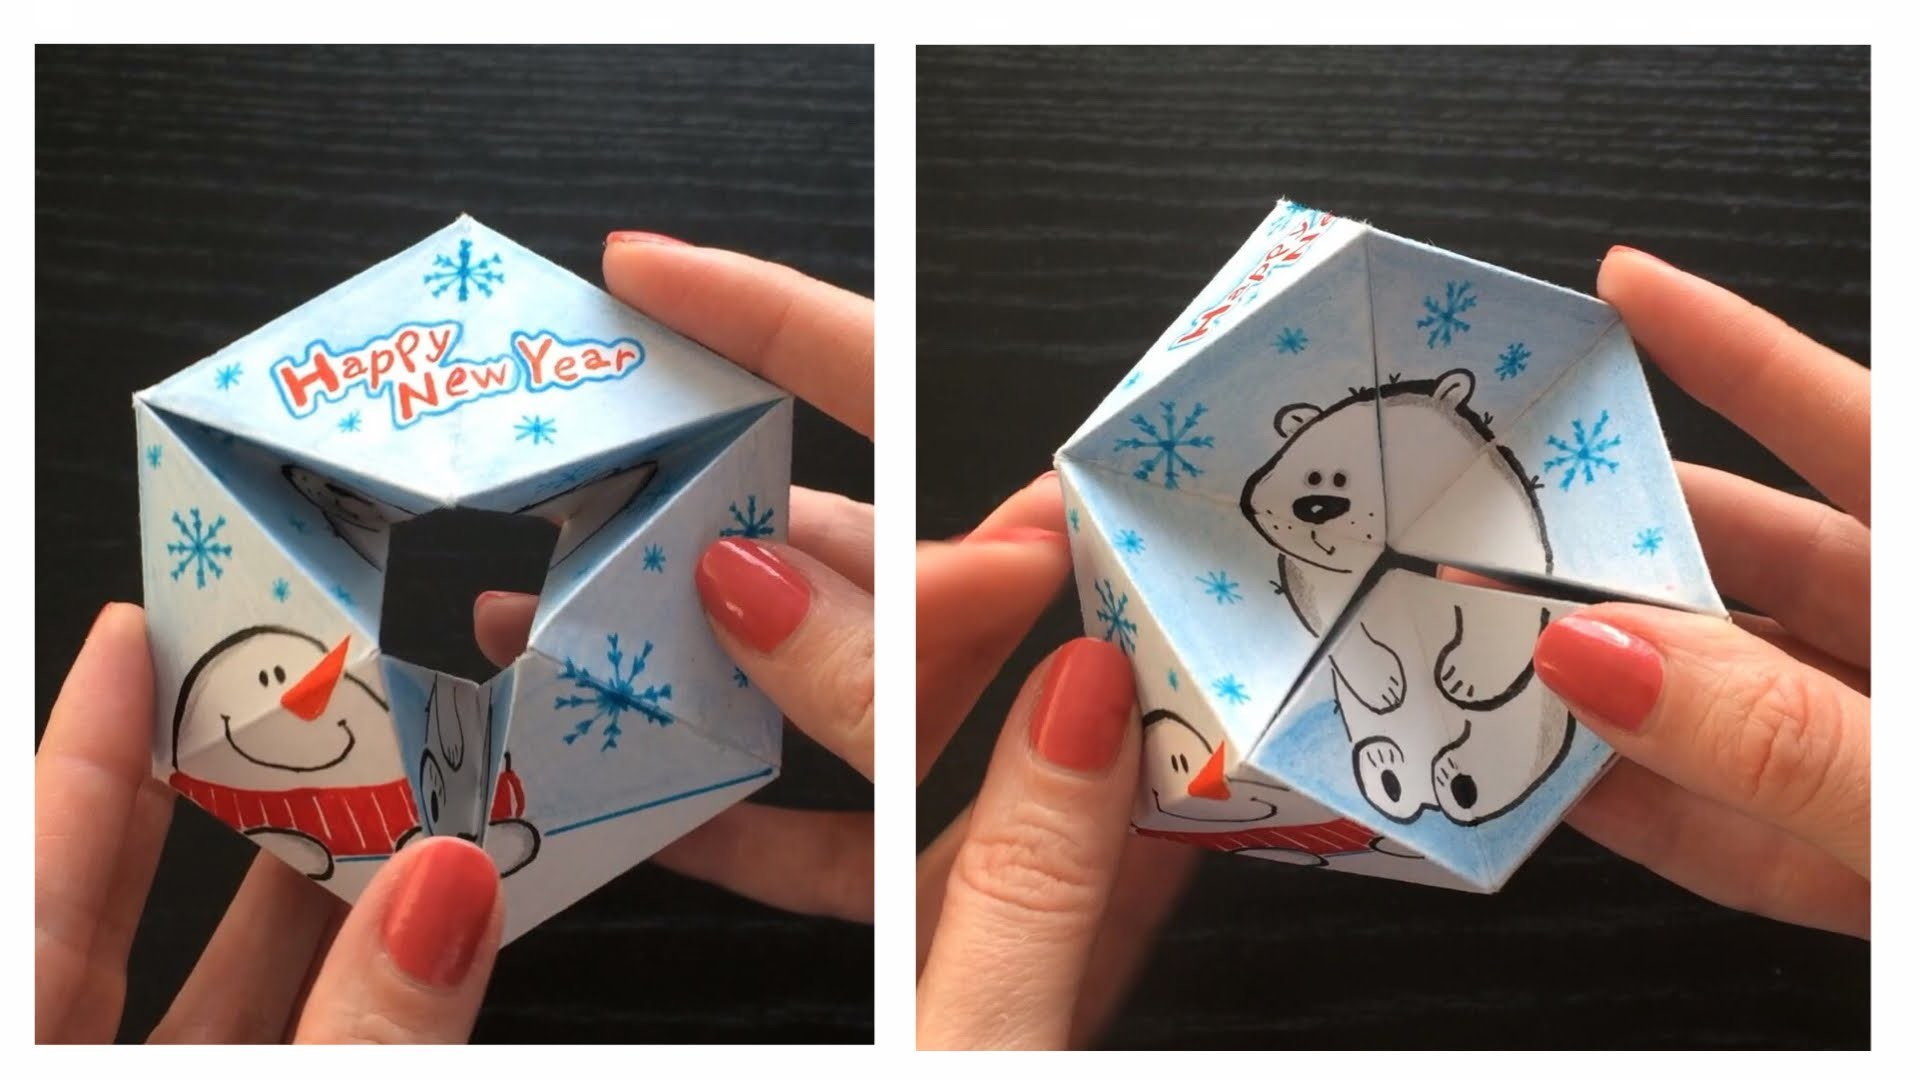 2 in 1 Paper toy & hand drawn Greeting card